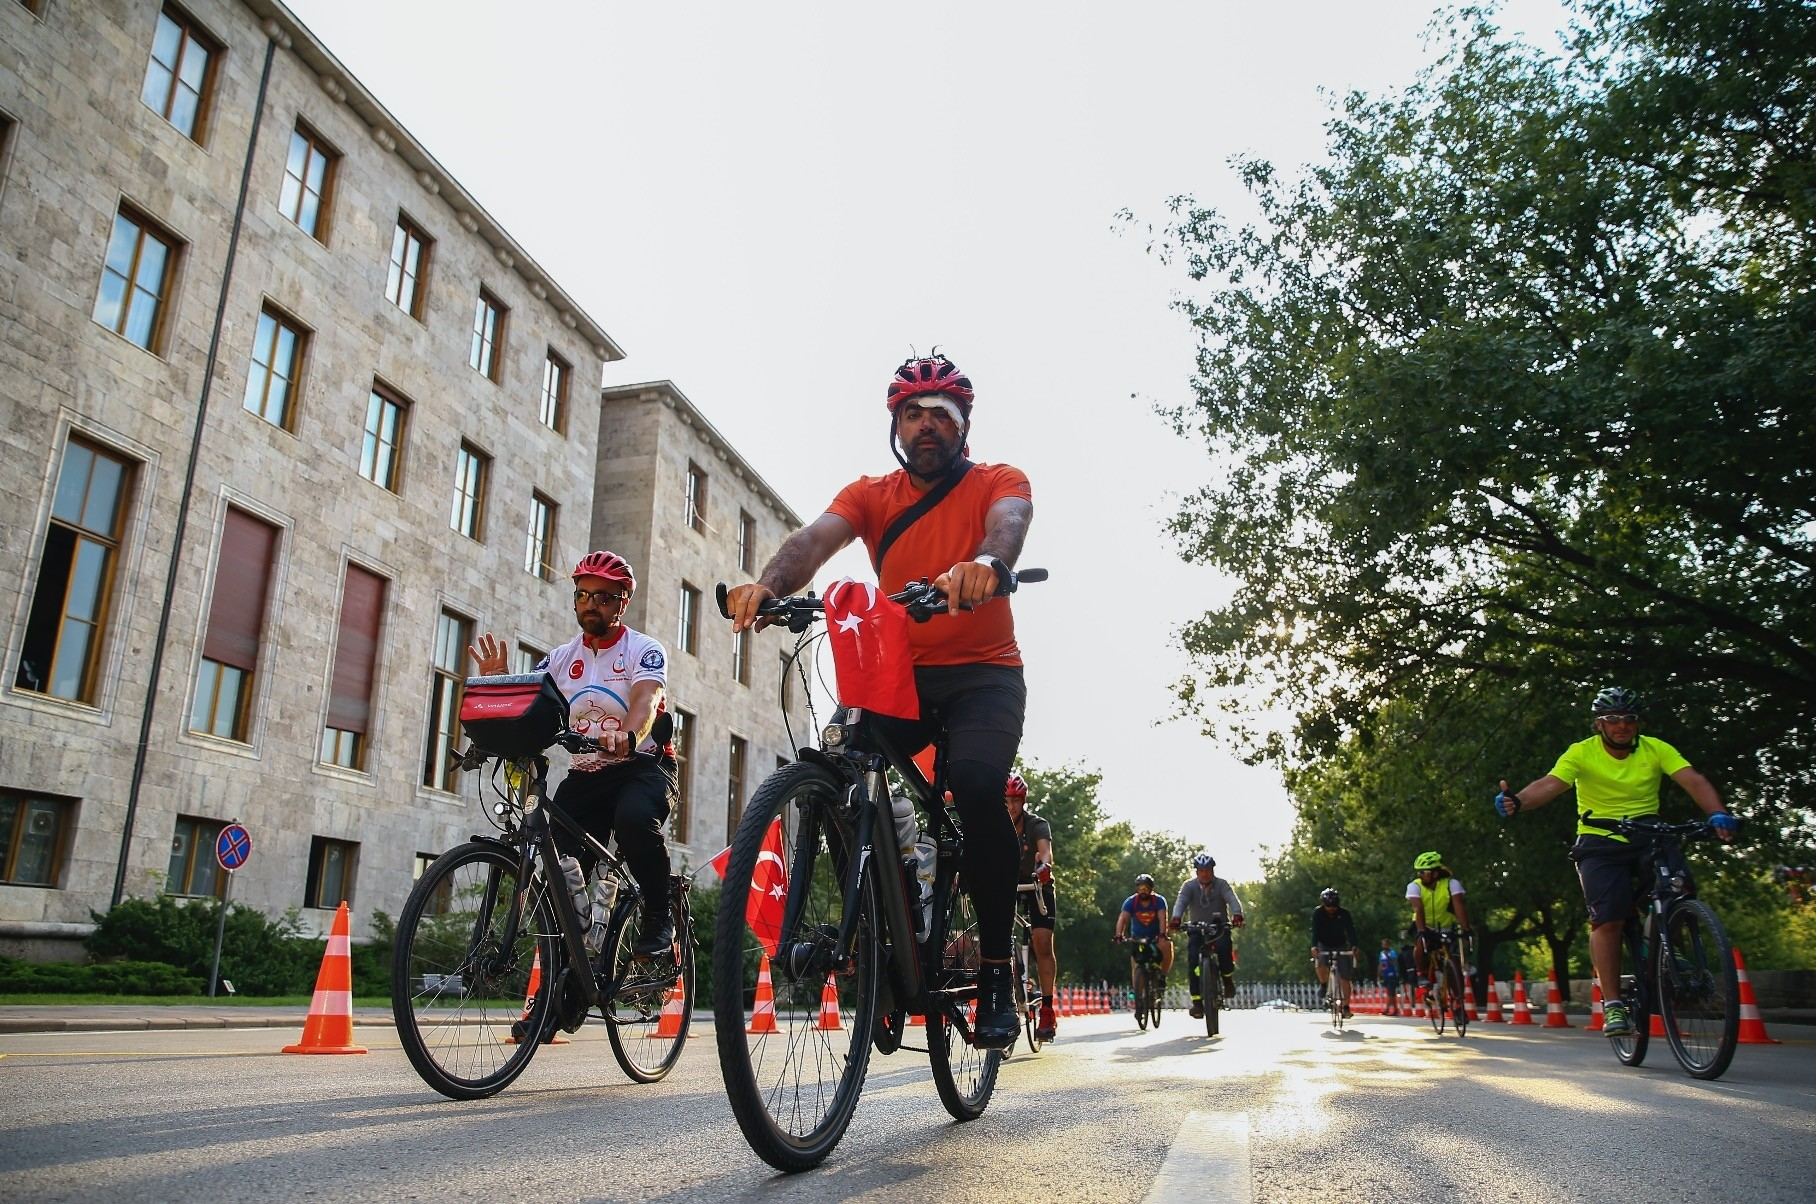 Cyclists ride to the entrance of Turkish parliament where they handed a Turkish flag to the parliamentary speaker to conclude their ride from Germany.